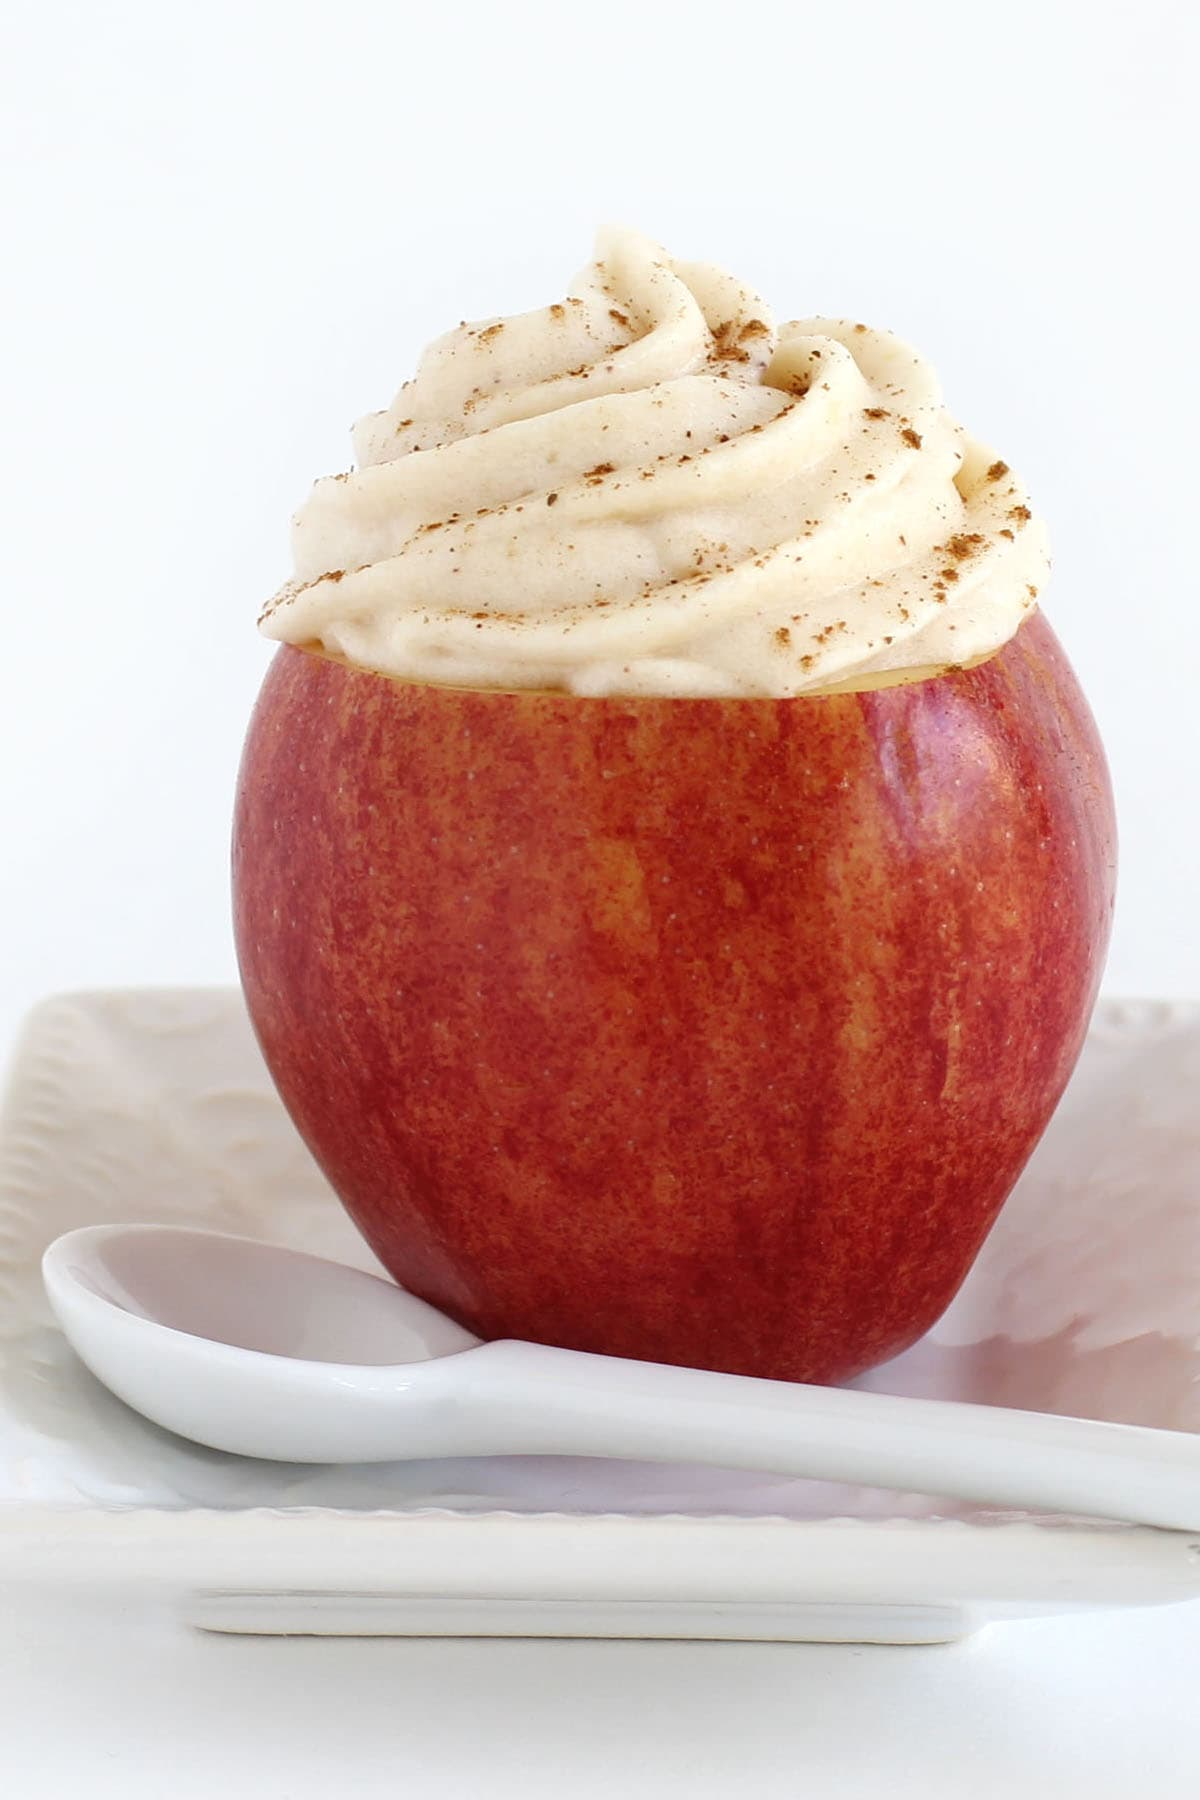 Apple Mousse served in a hollowed-out apple.